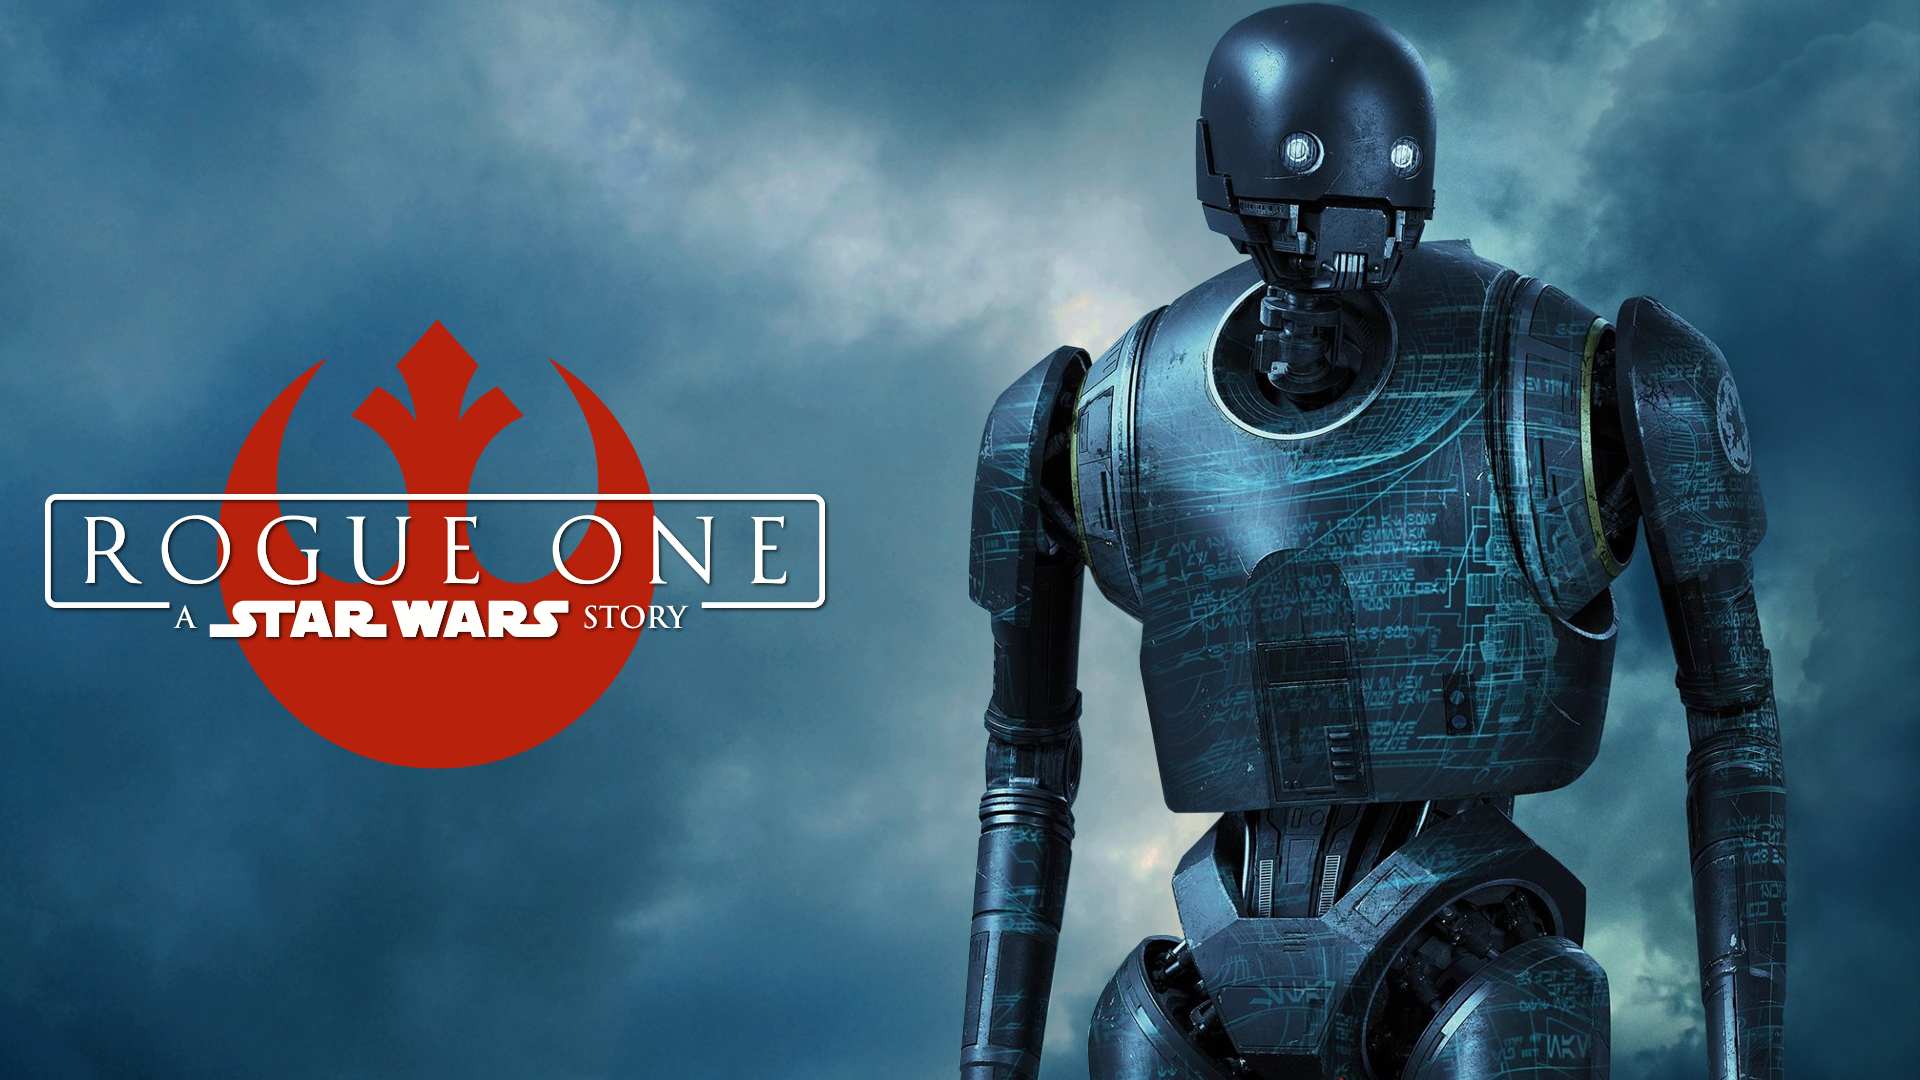 Rogue One Wallpaper K 2so 2 By Spirit Of Adventure On Deviantart